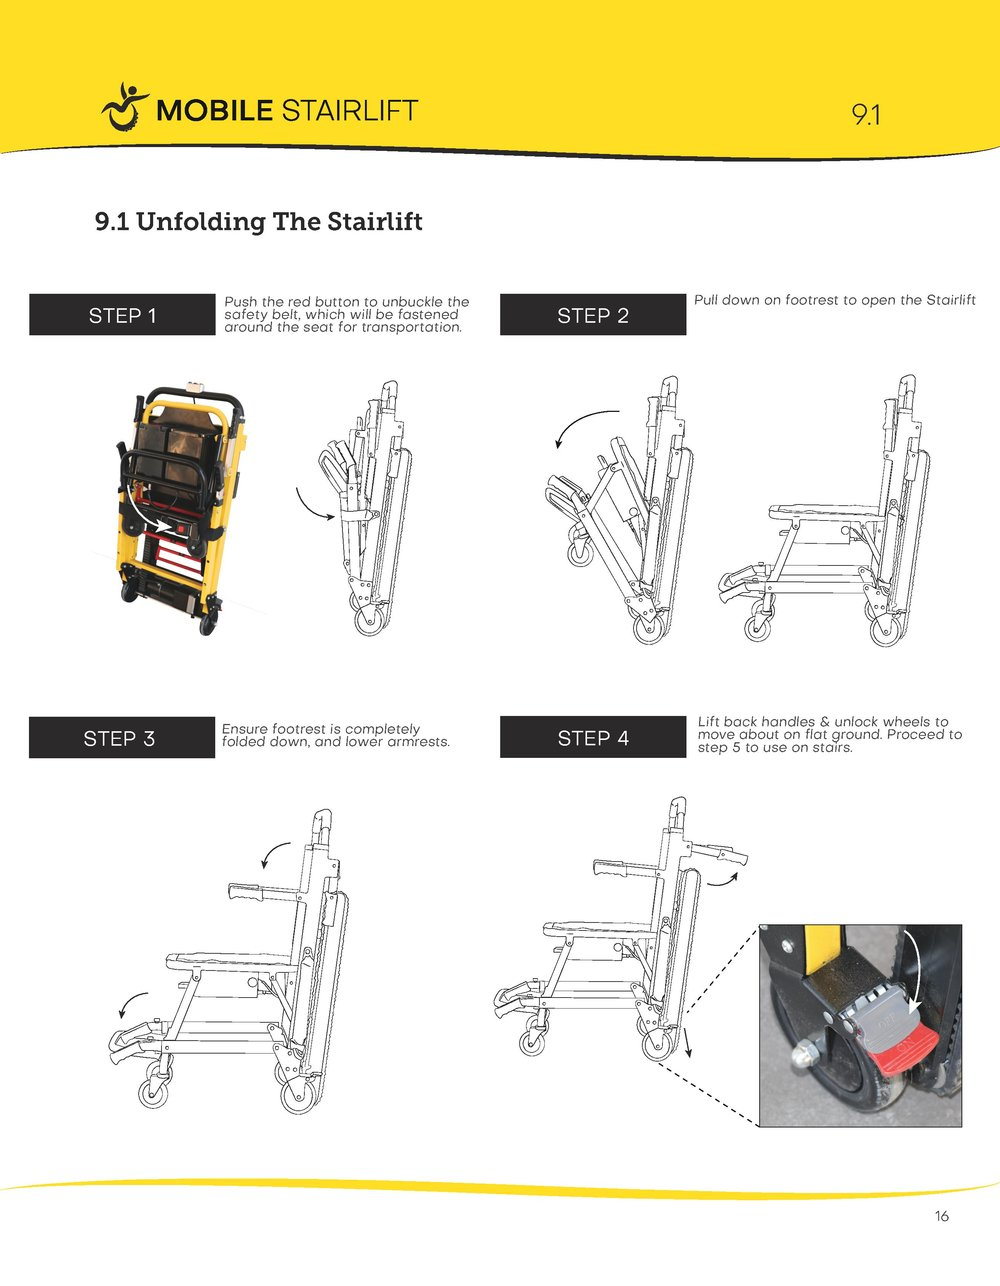 Mobile Stairlift Instruction Manual-17.jpg